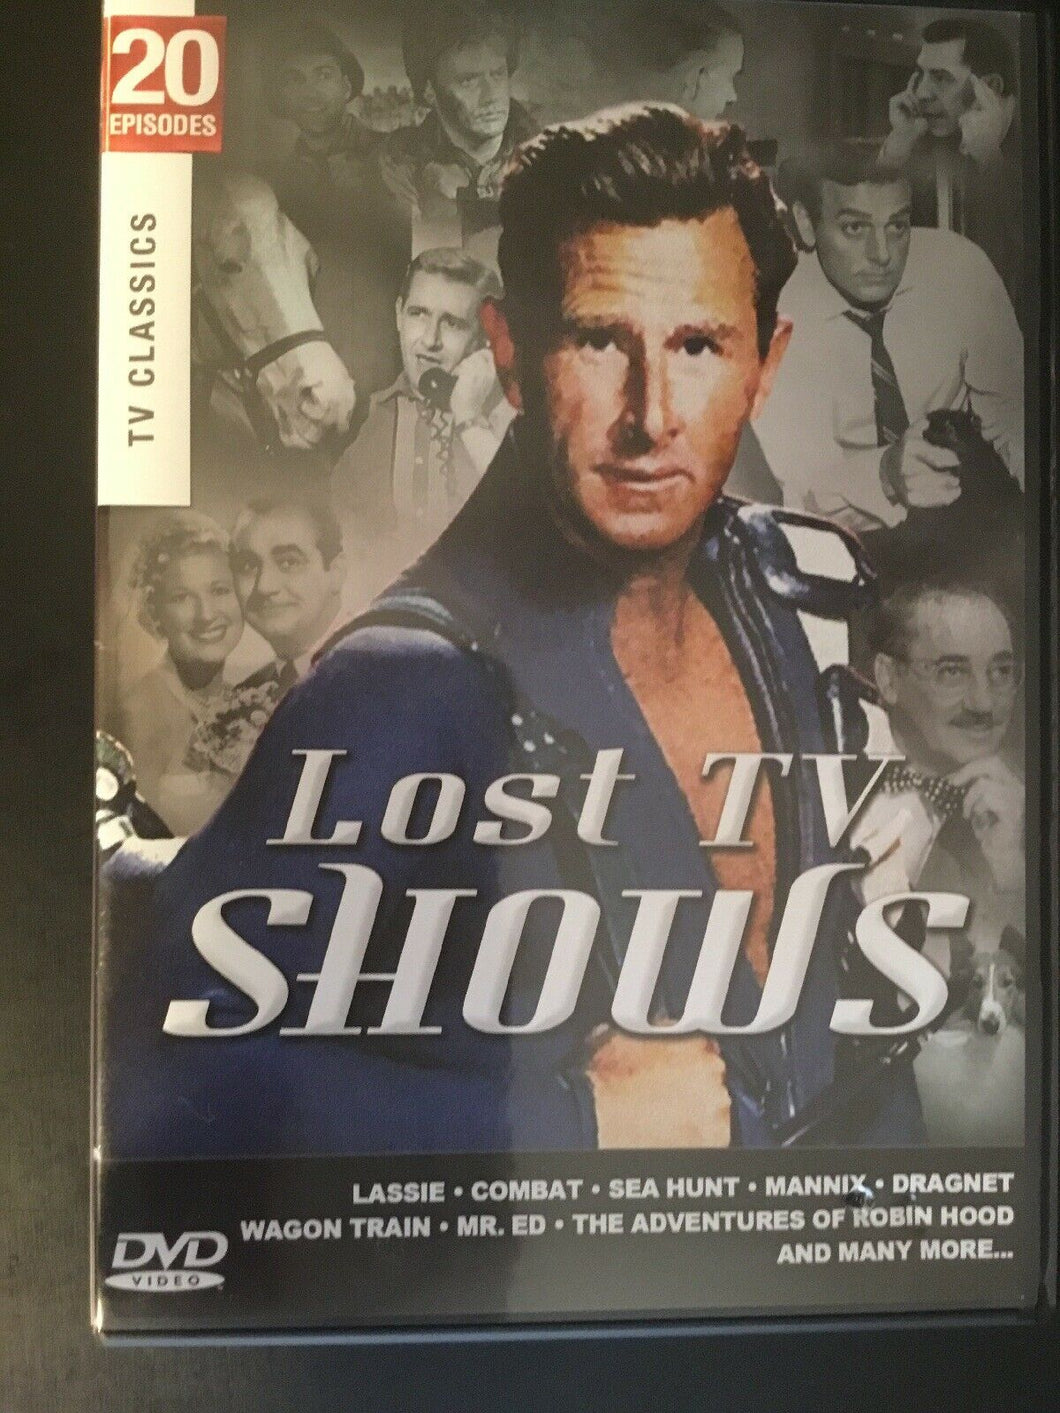 Lost Tv Shows Dvd